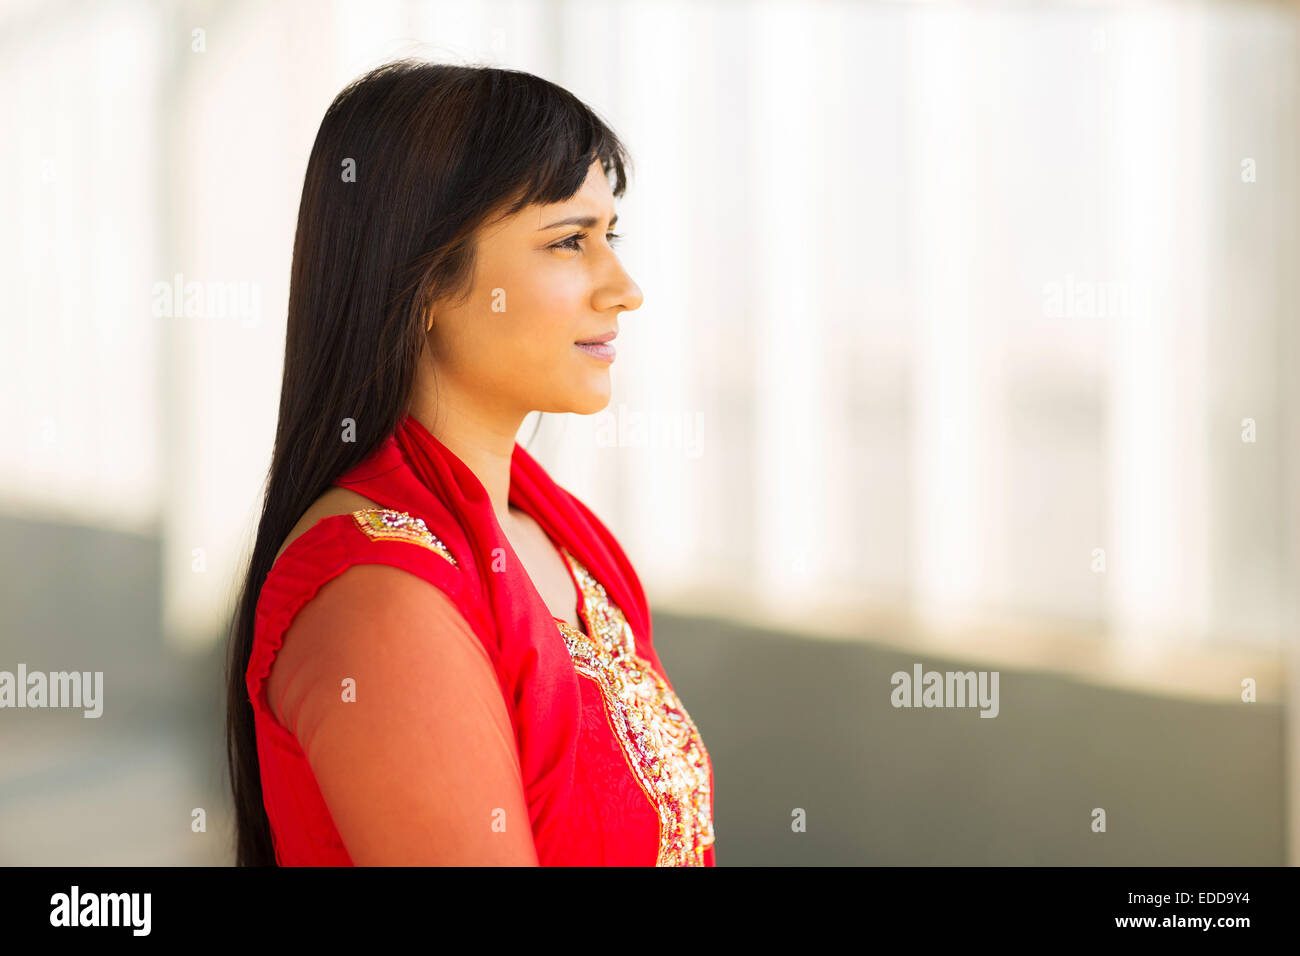 thoughtful Indian businesswoman wearing saree in office Stock Photo